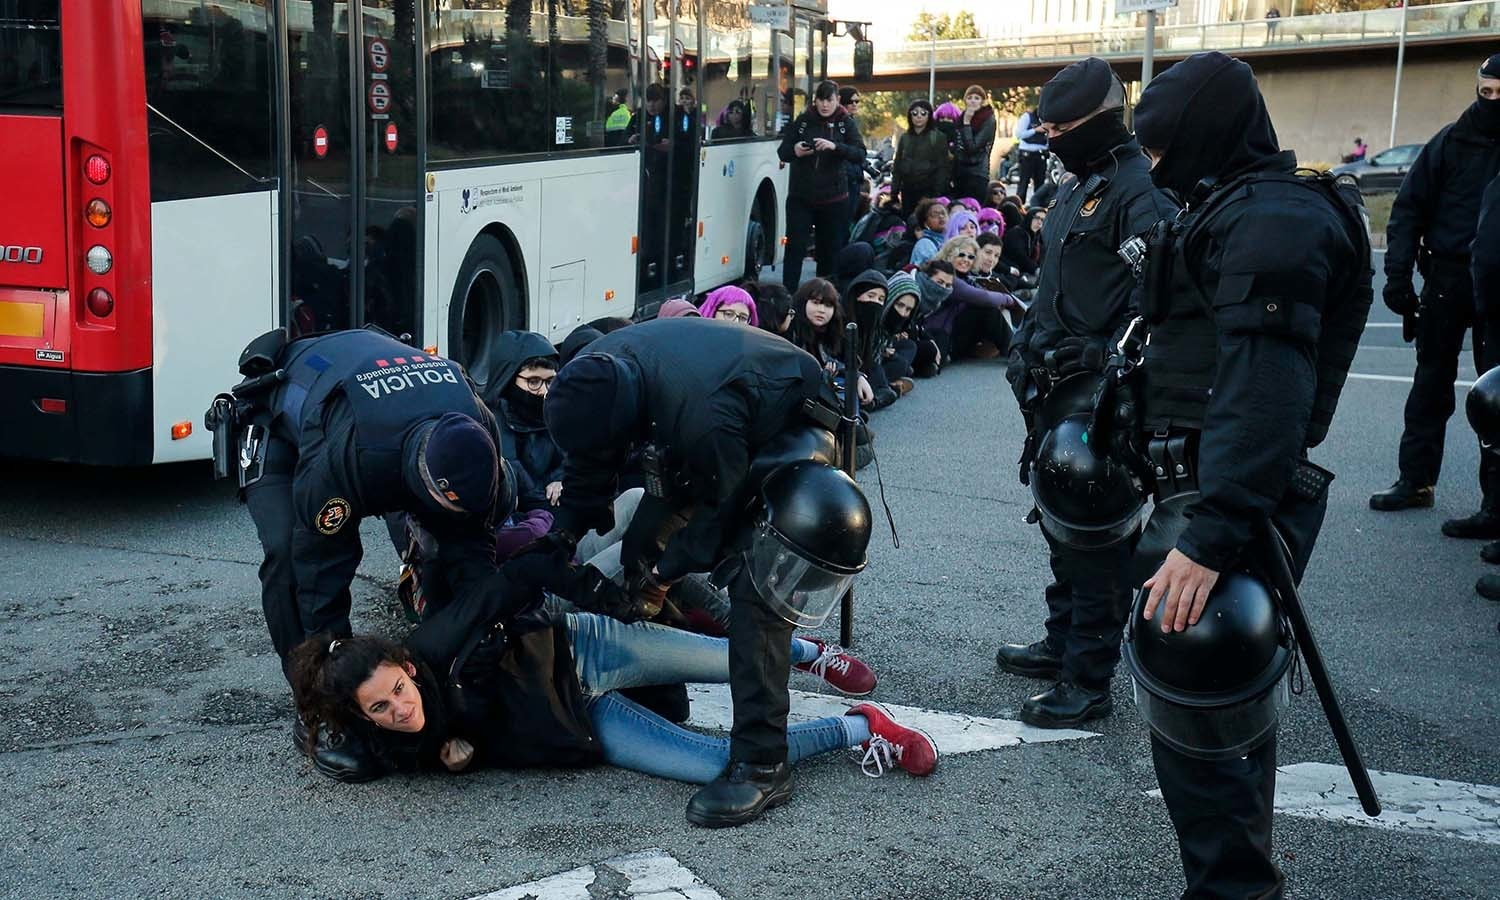 Catalan regional police forces Mossos d'Esquadra drag a woman as they disperse demonstrators blocking the Gran Via street during a protest marking International Women's Day in Barcelona. — AFP